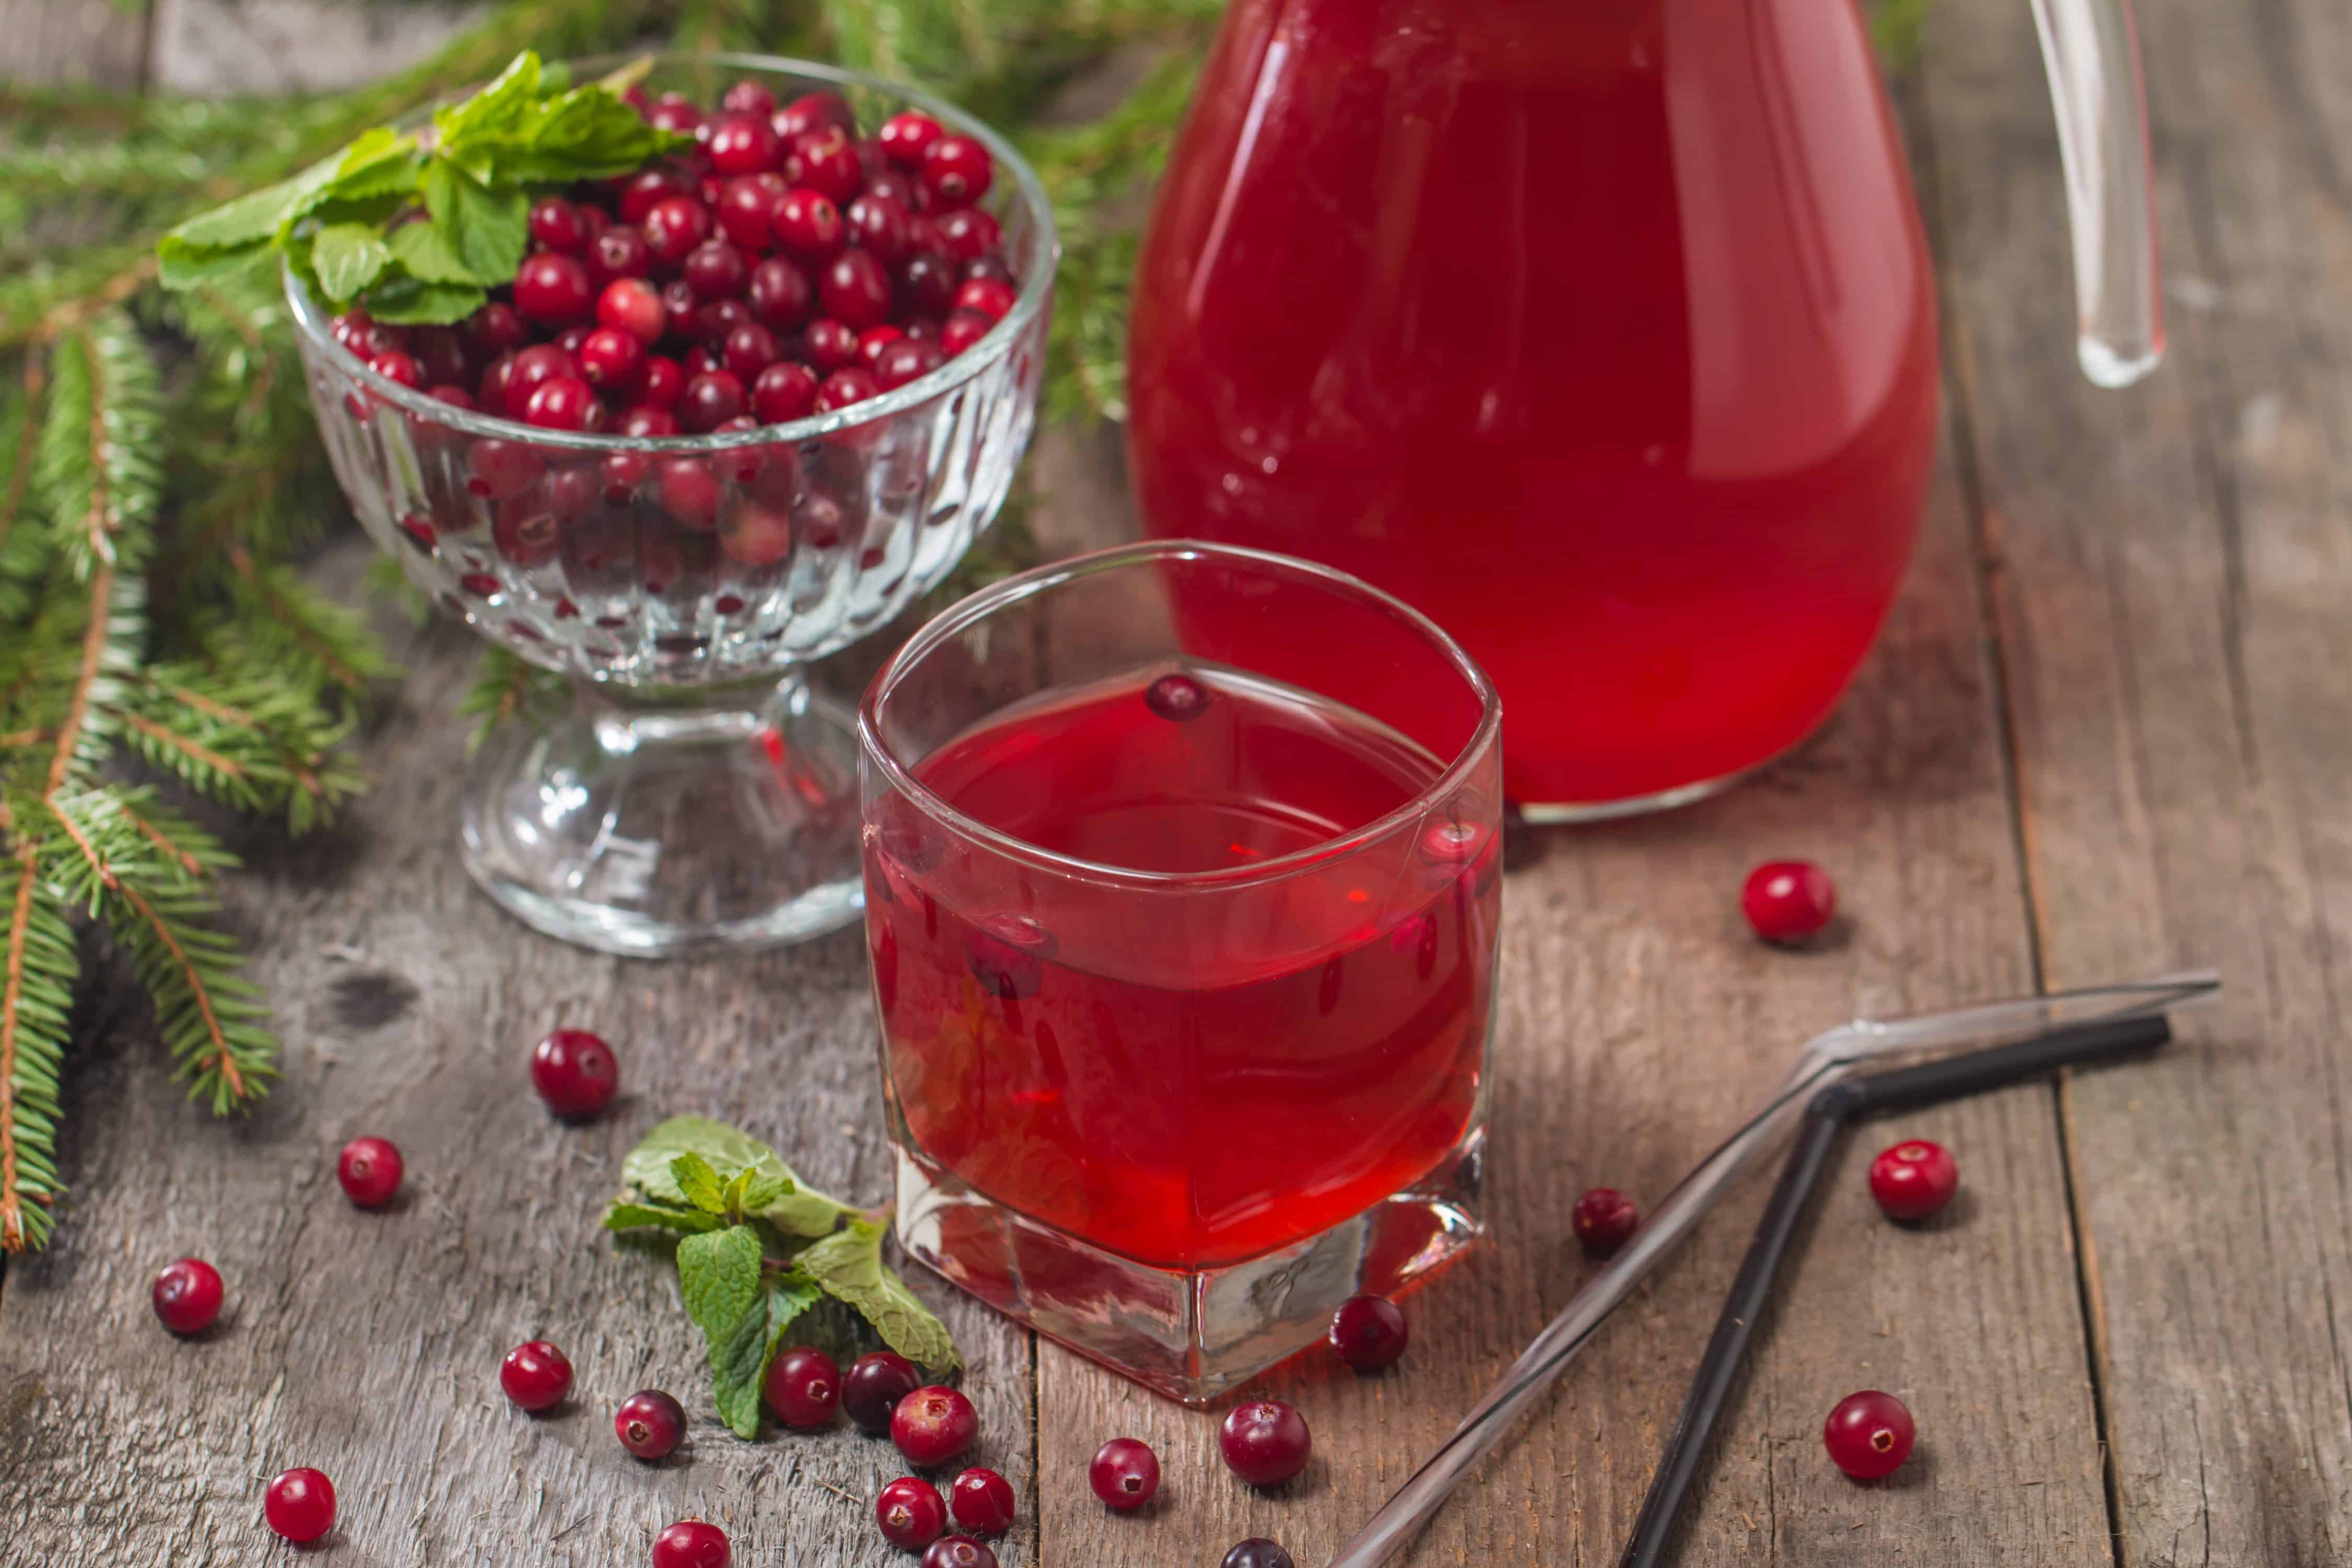 Top 10 homemade detox drinks for weight loss for Best alcohol to mix with cranberry juice